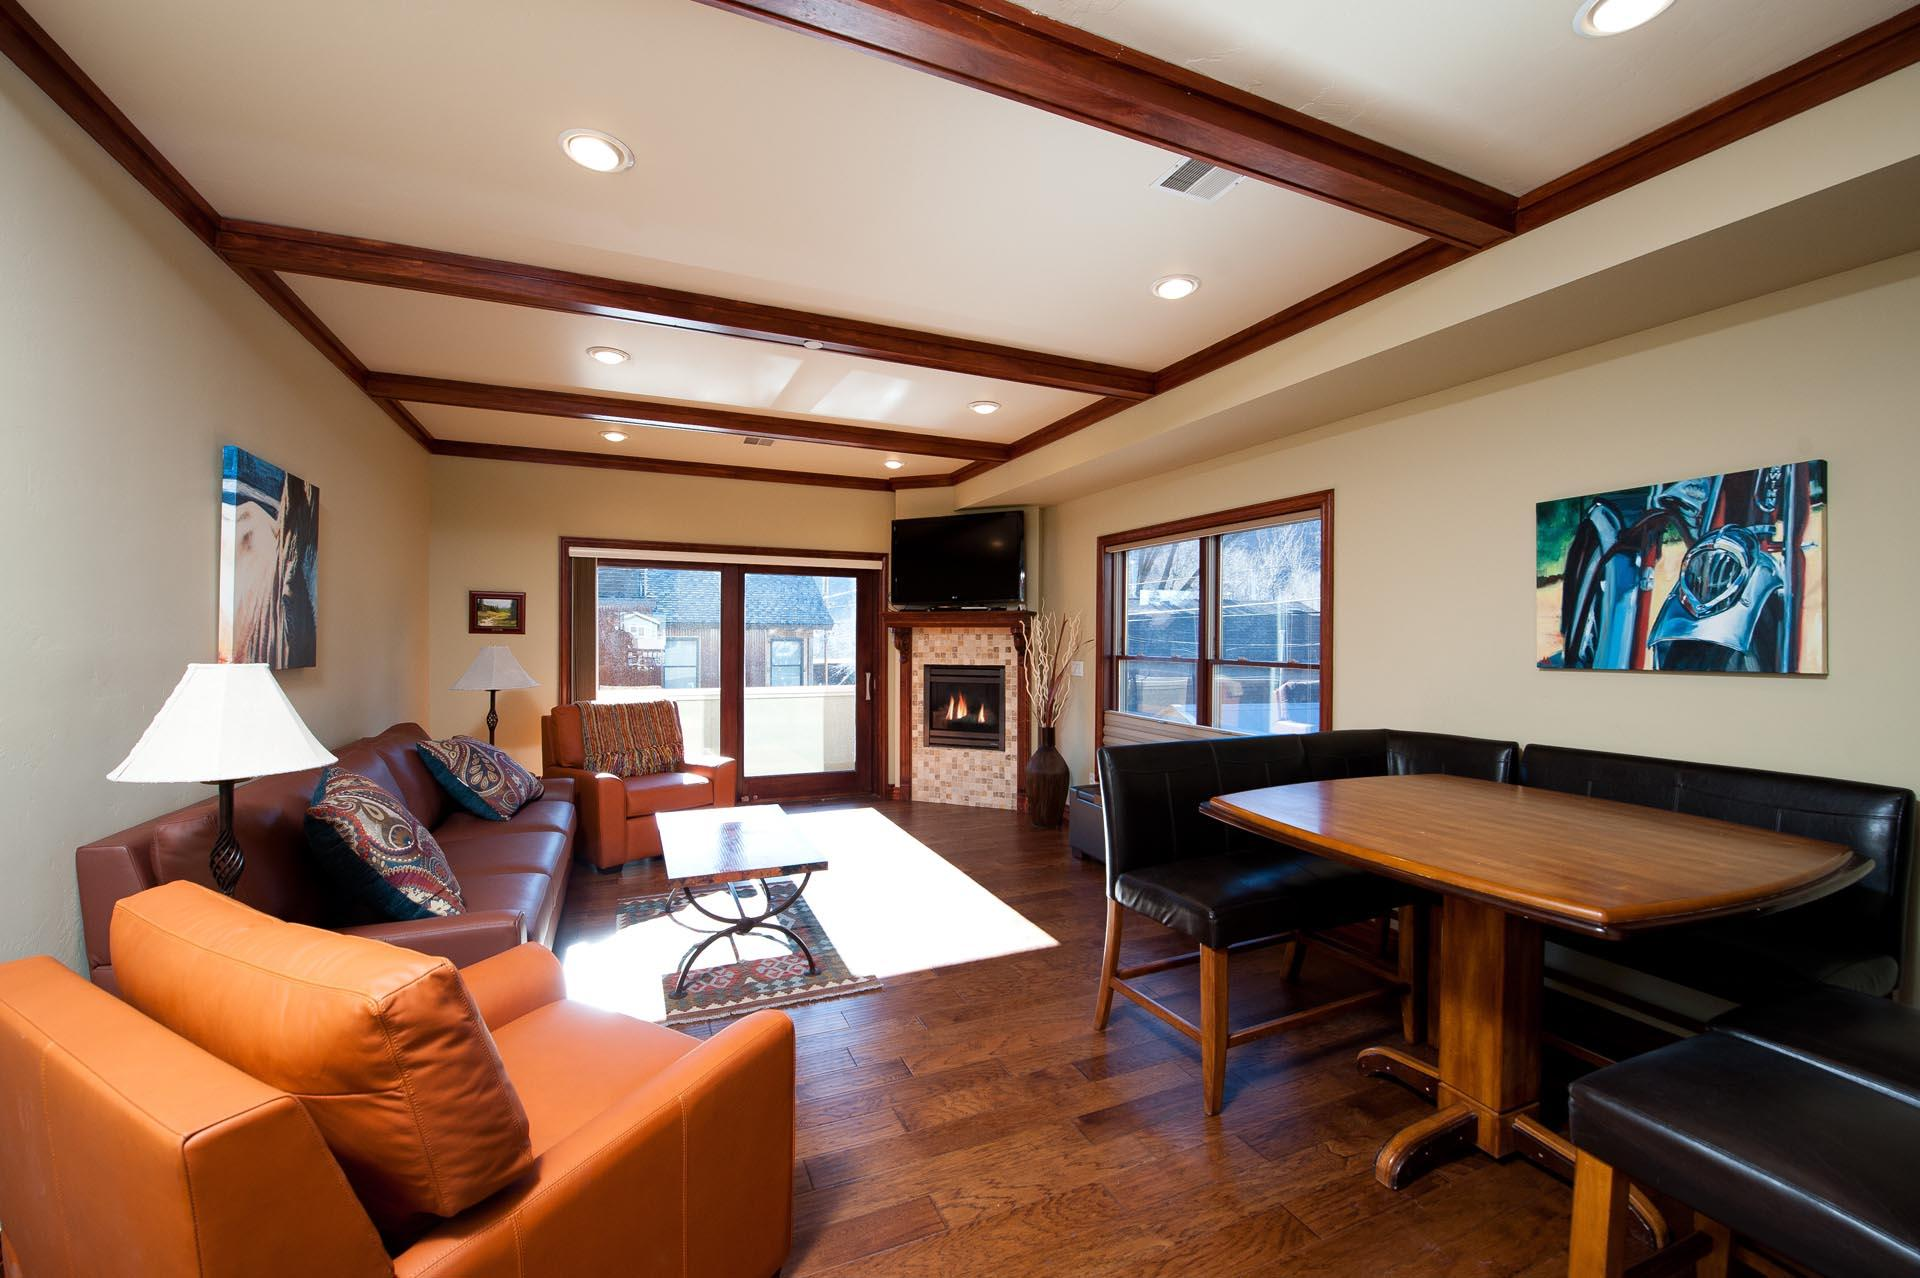 Downtown Durango, CO vacation rental condo. Living room with Fireplace and TV